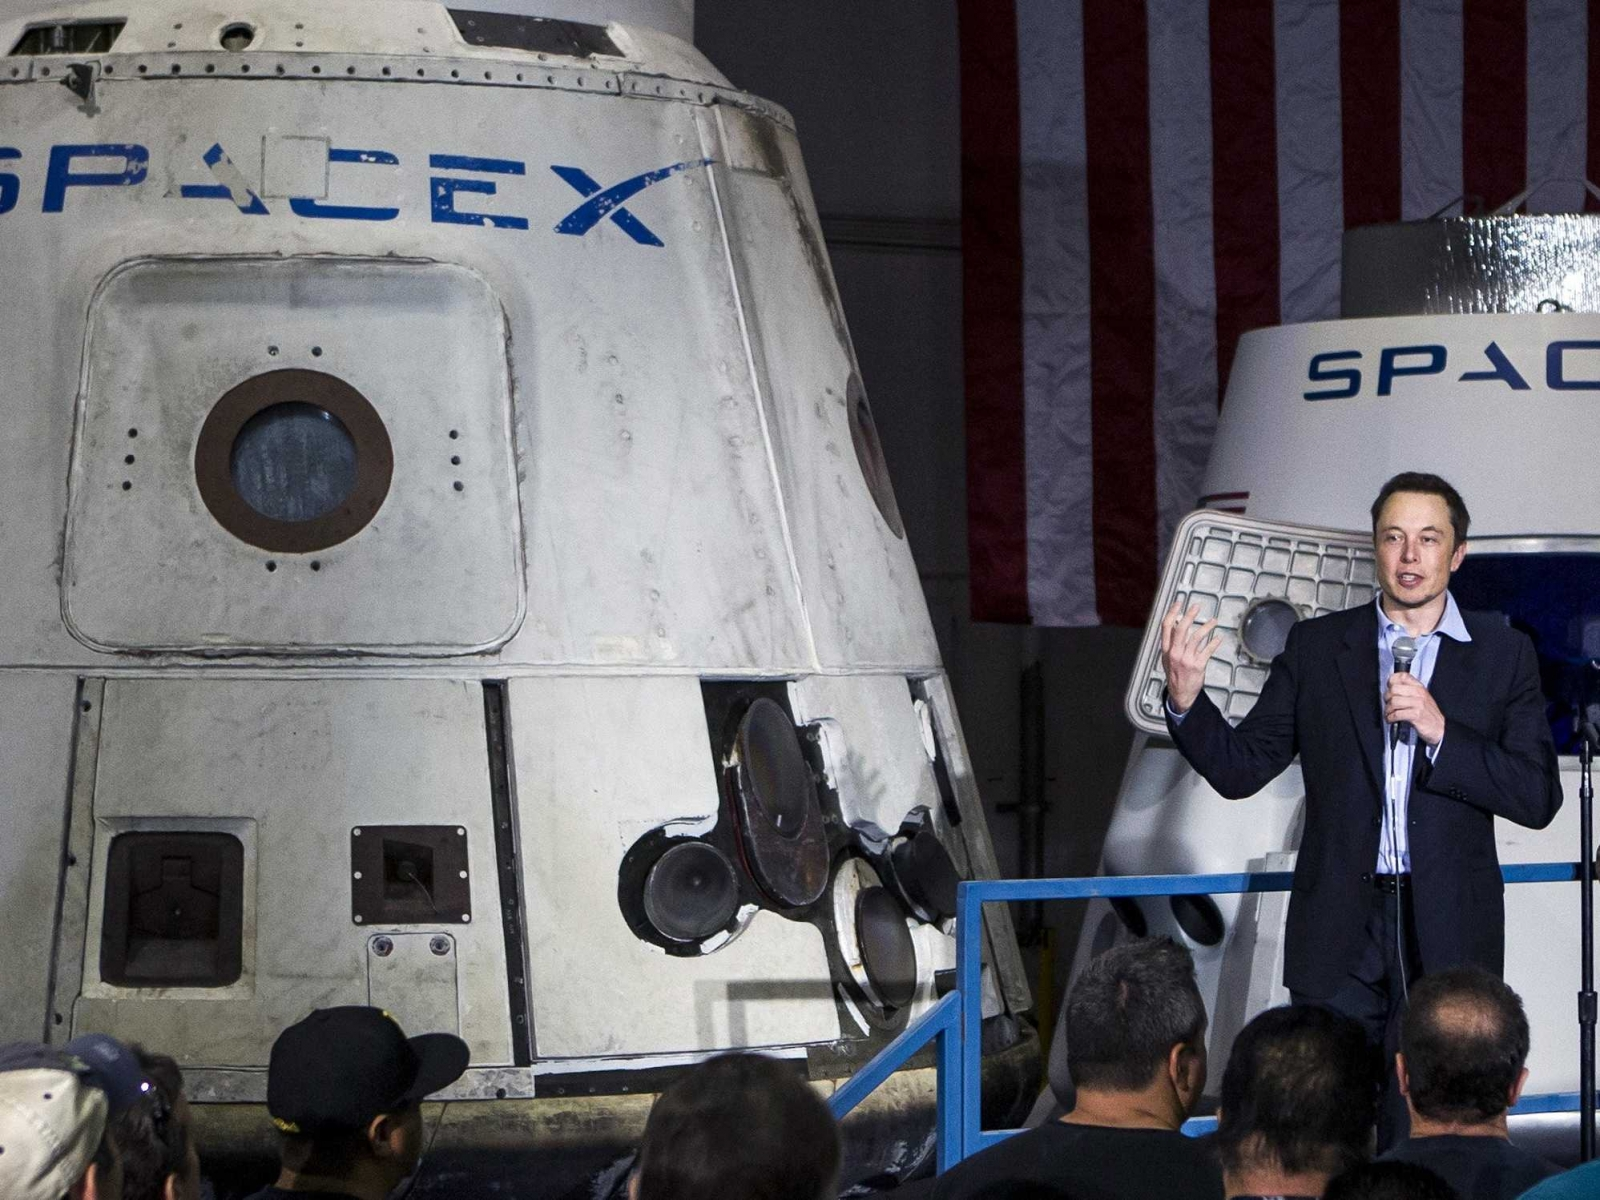 No one likes working with Elon Musk, claims SpaceX 'employee'